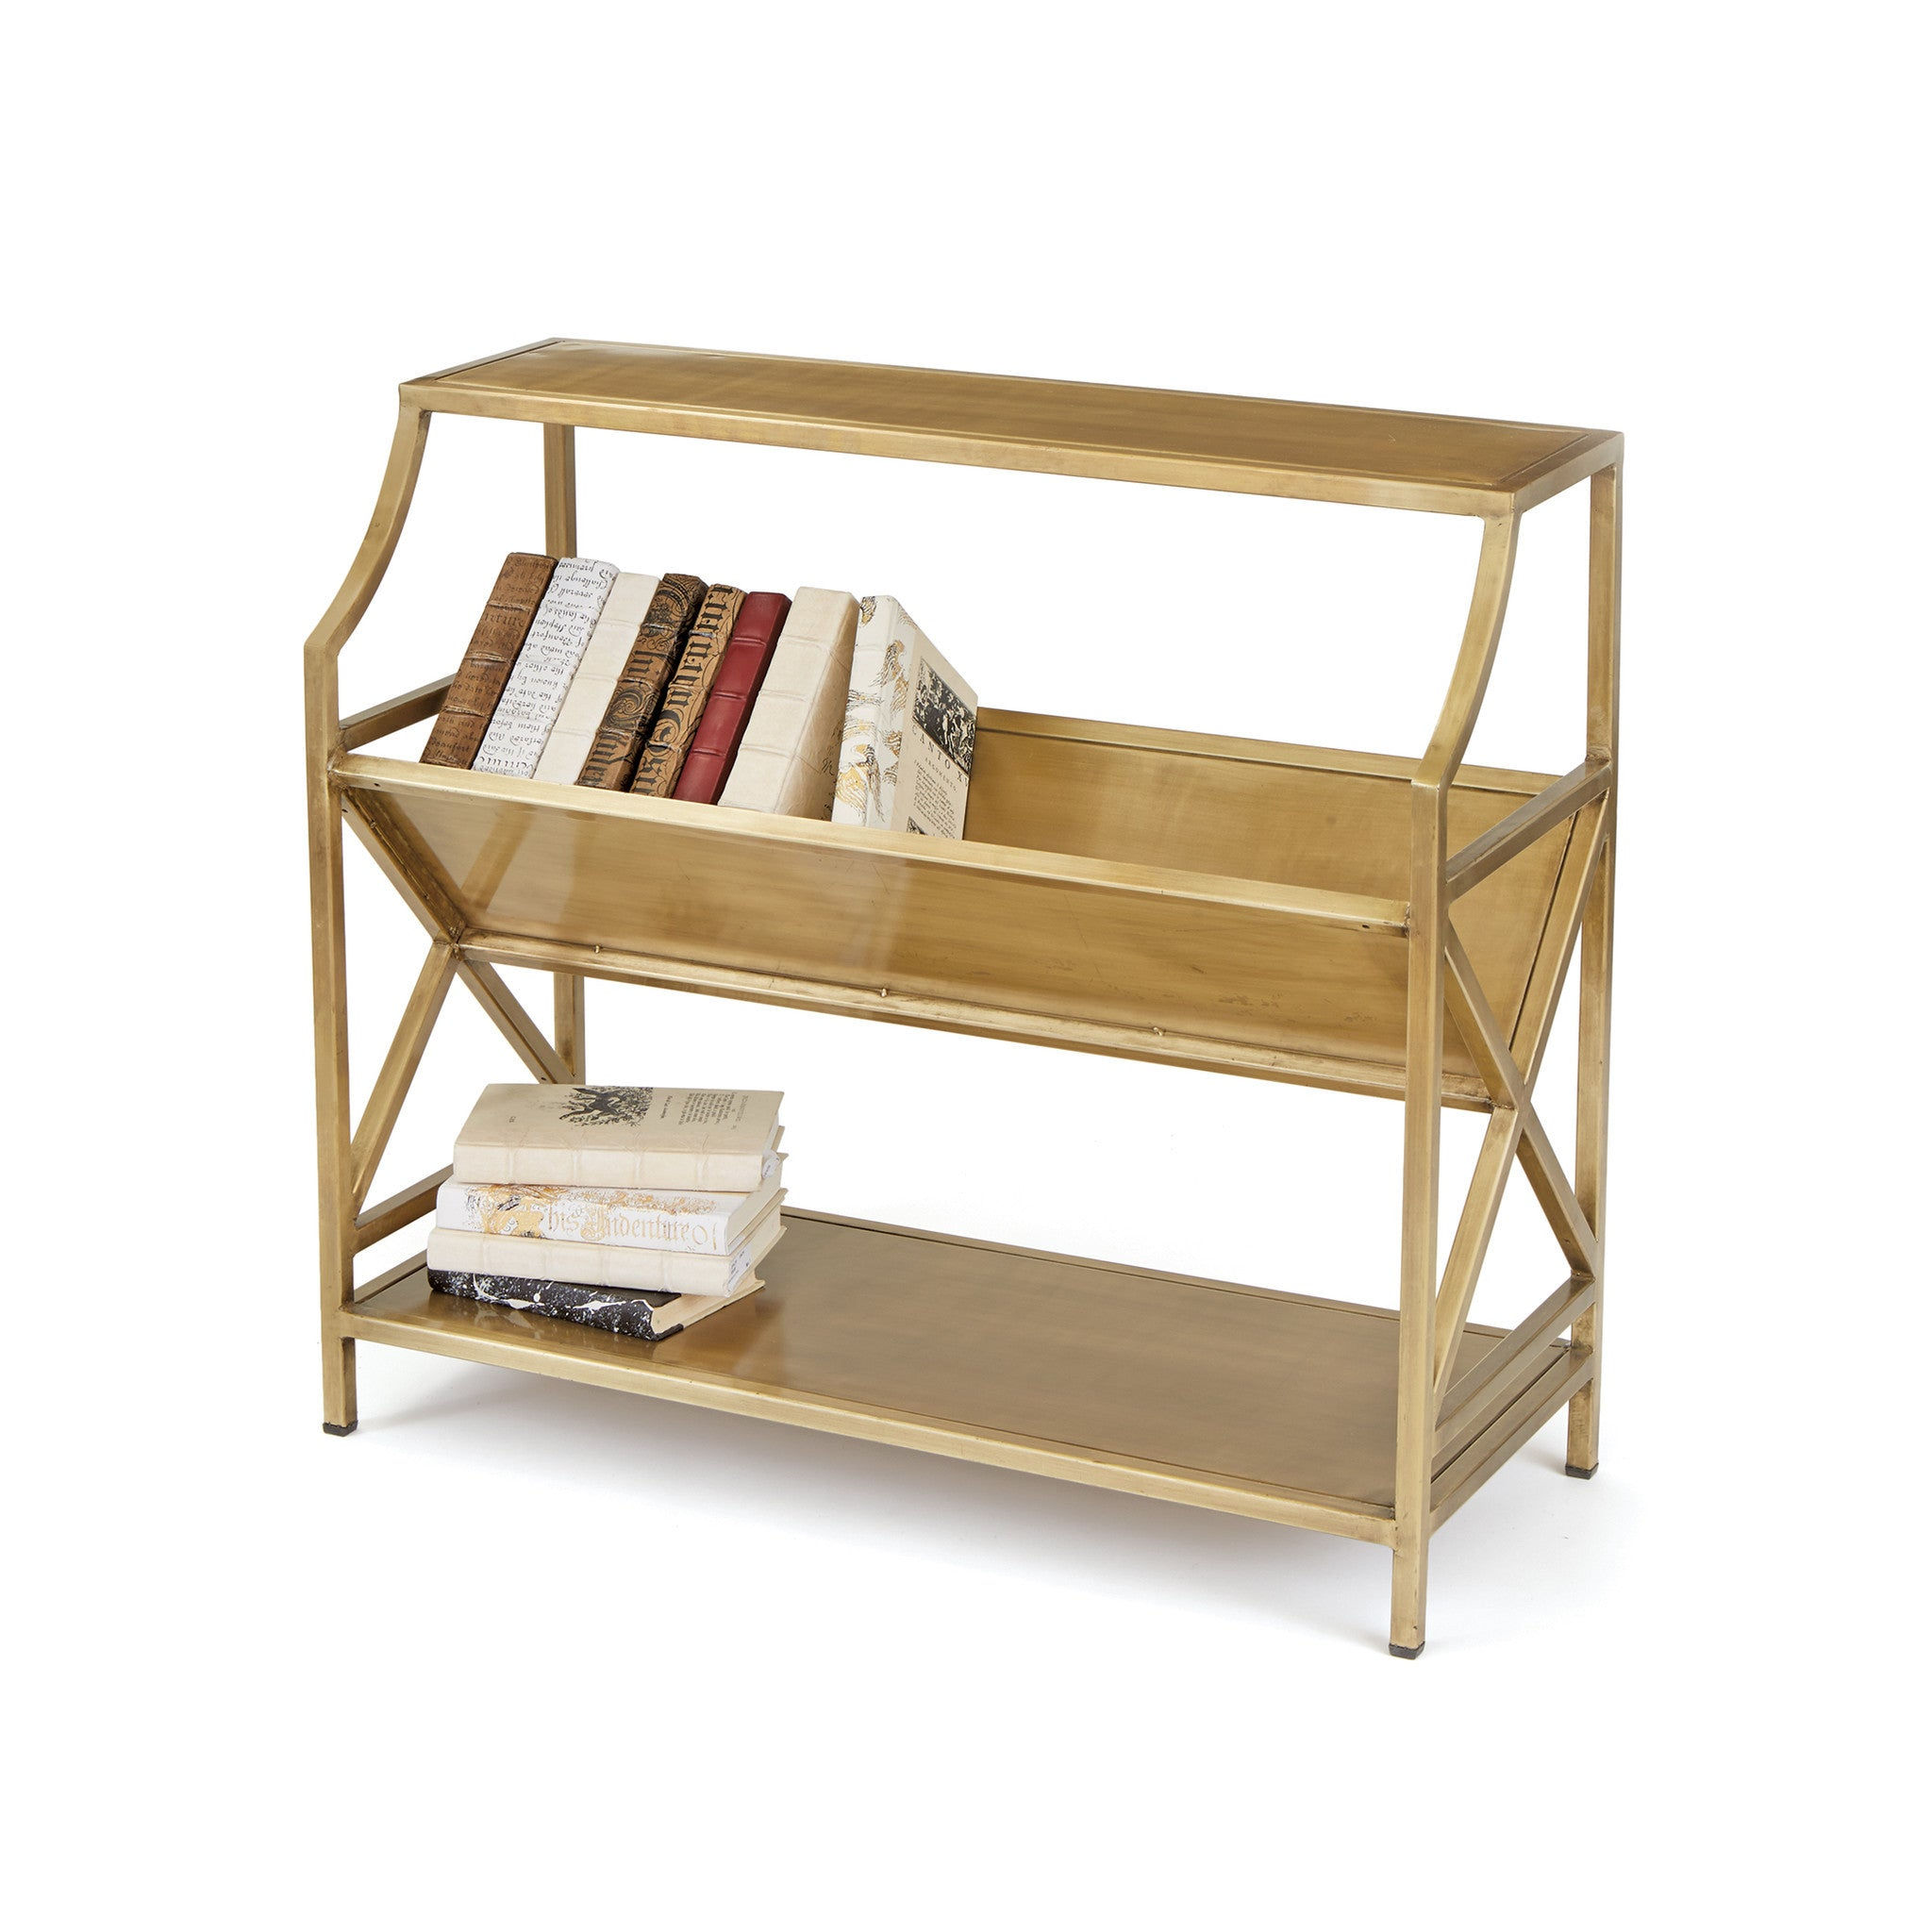 remarkable with modern decoration bookcase ideas bookshelf books pics images wall rotating fascinating design